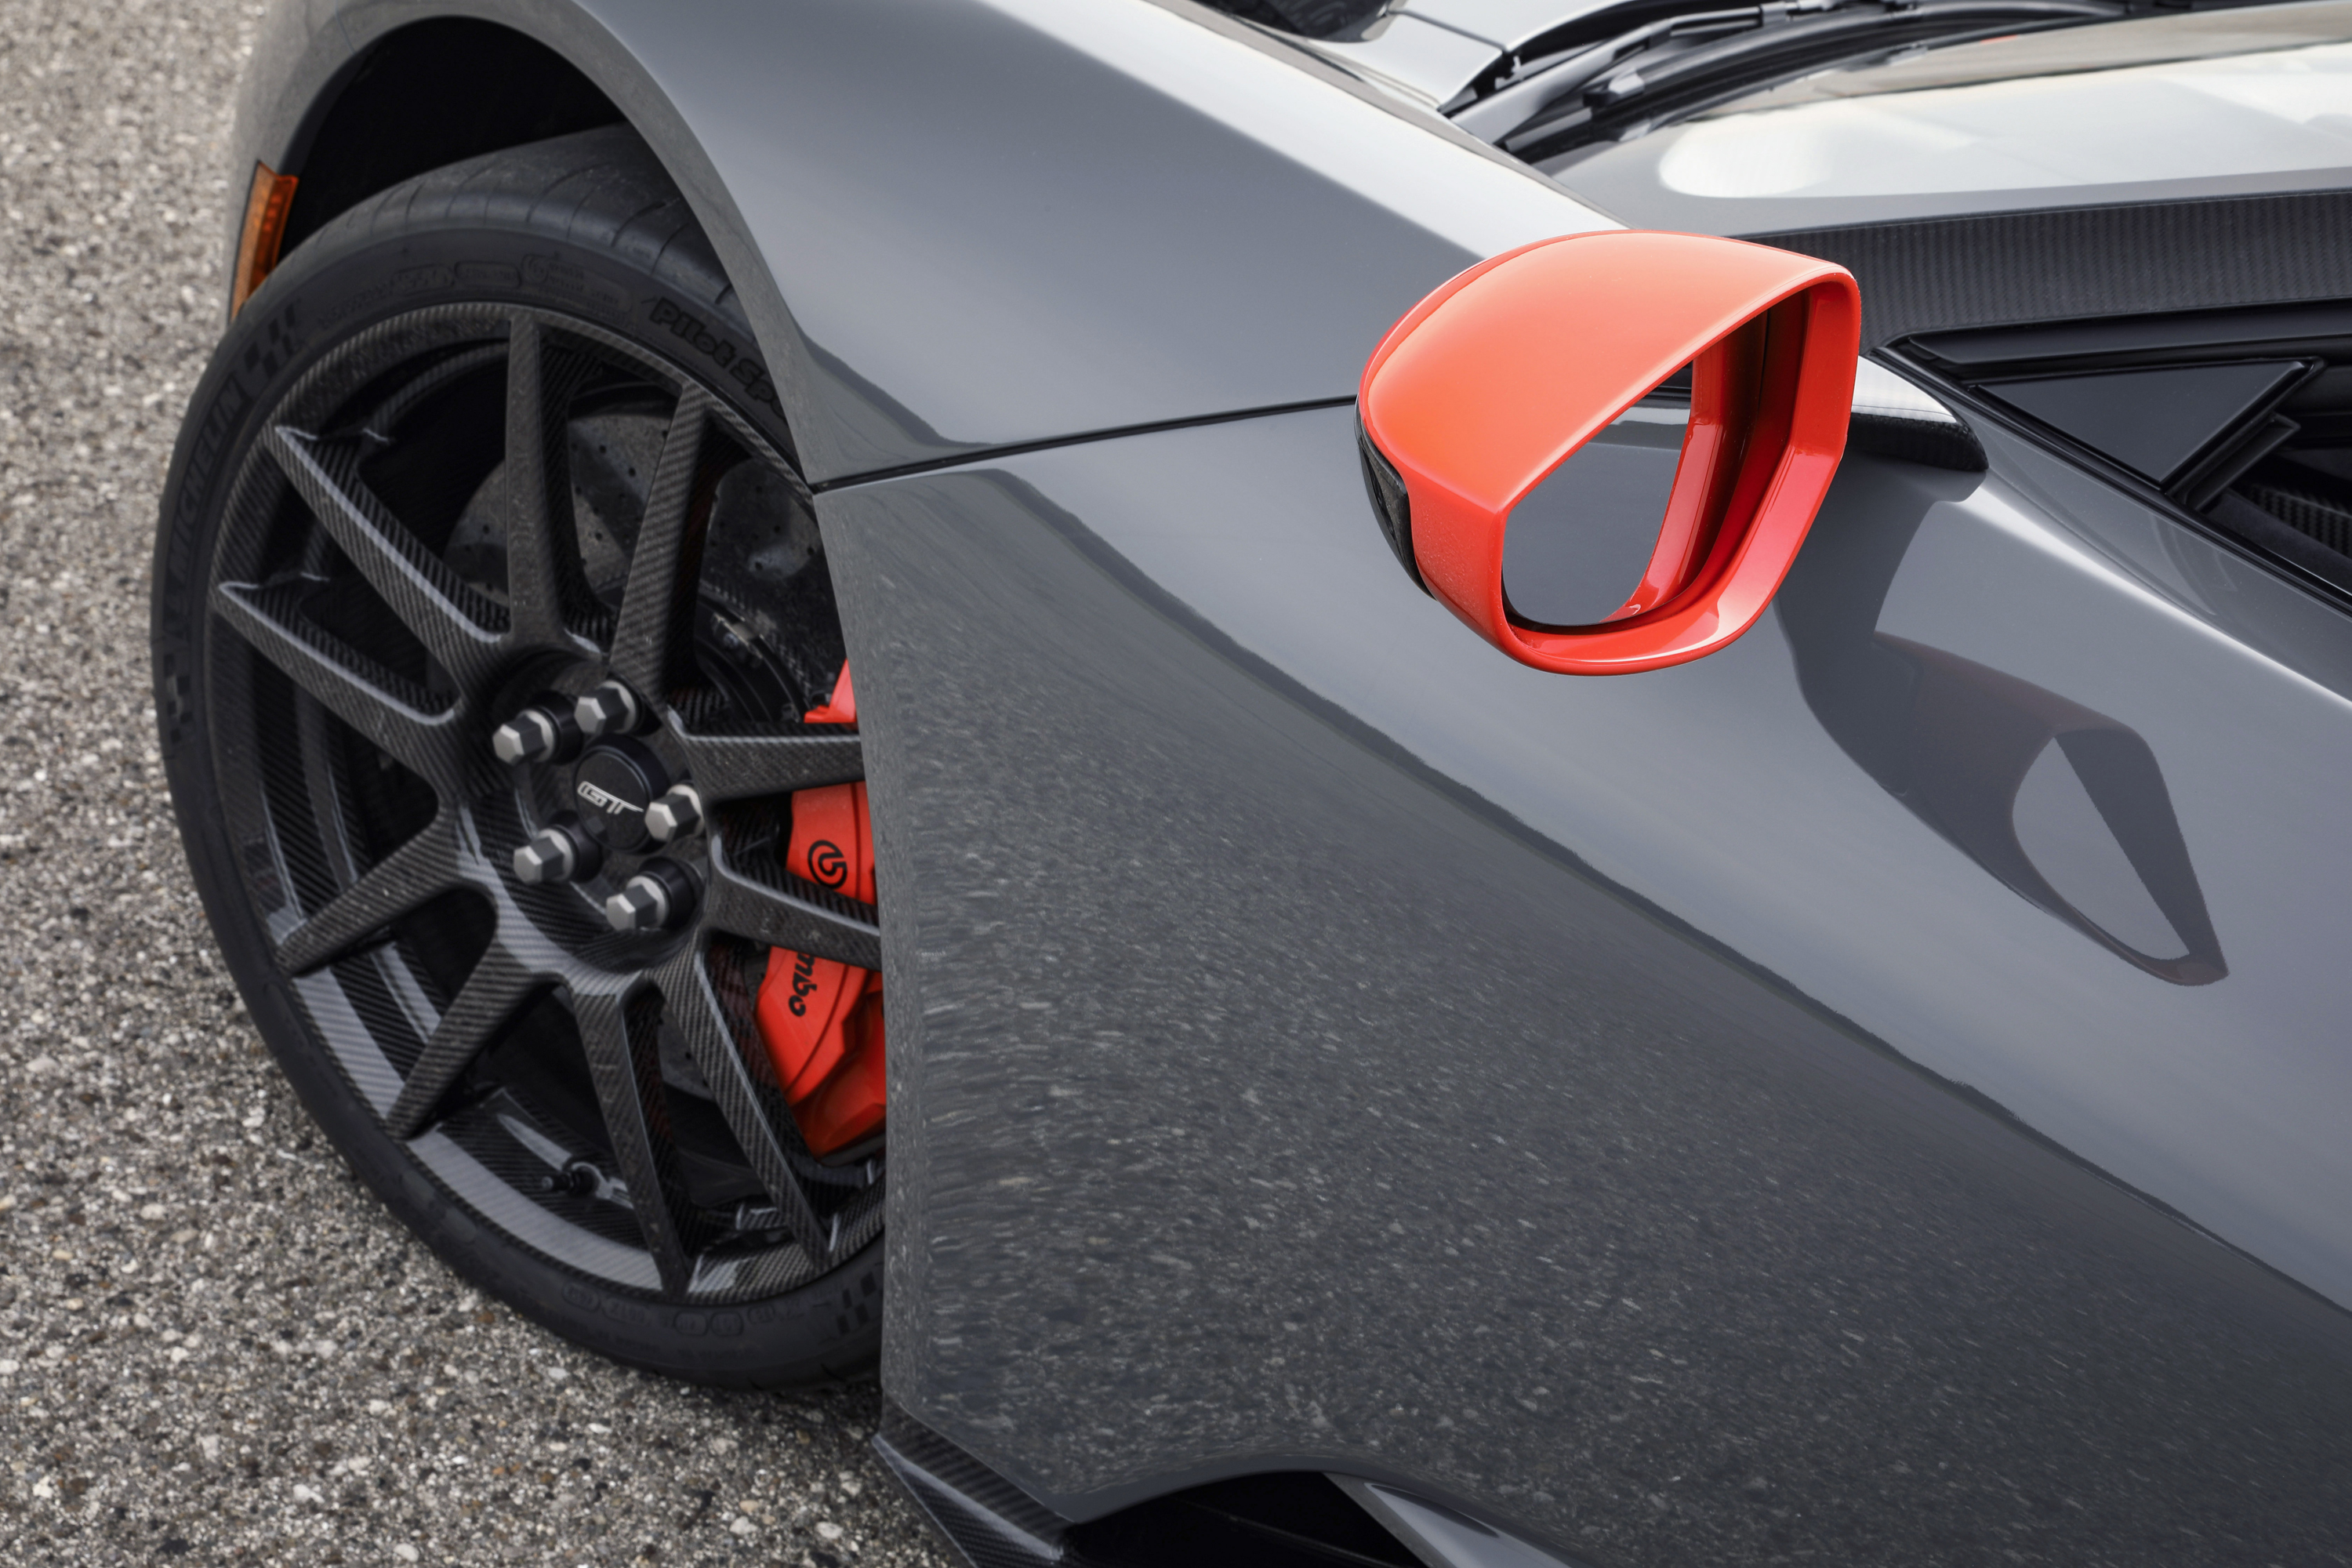 Ford GT Carbon Series Leadfoot Mirror Cap